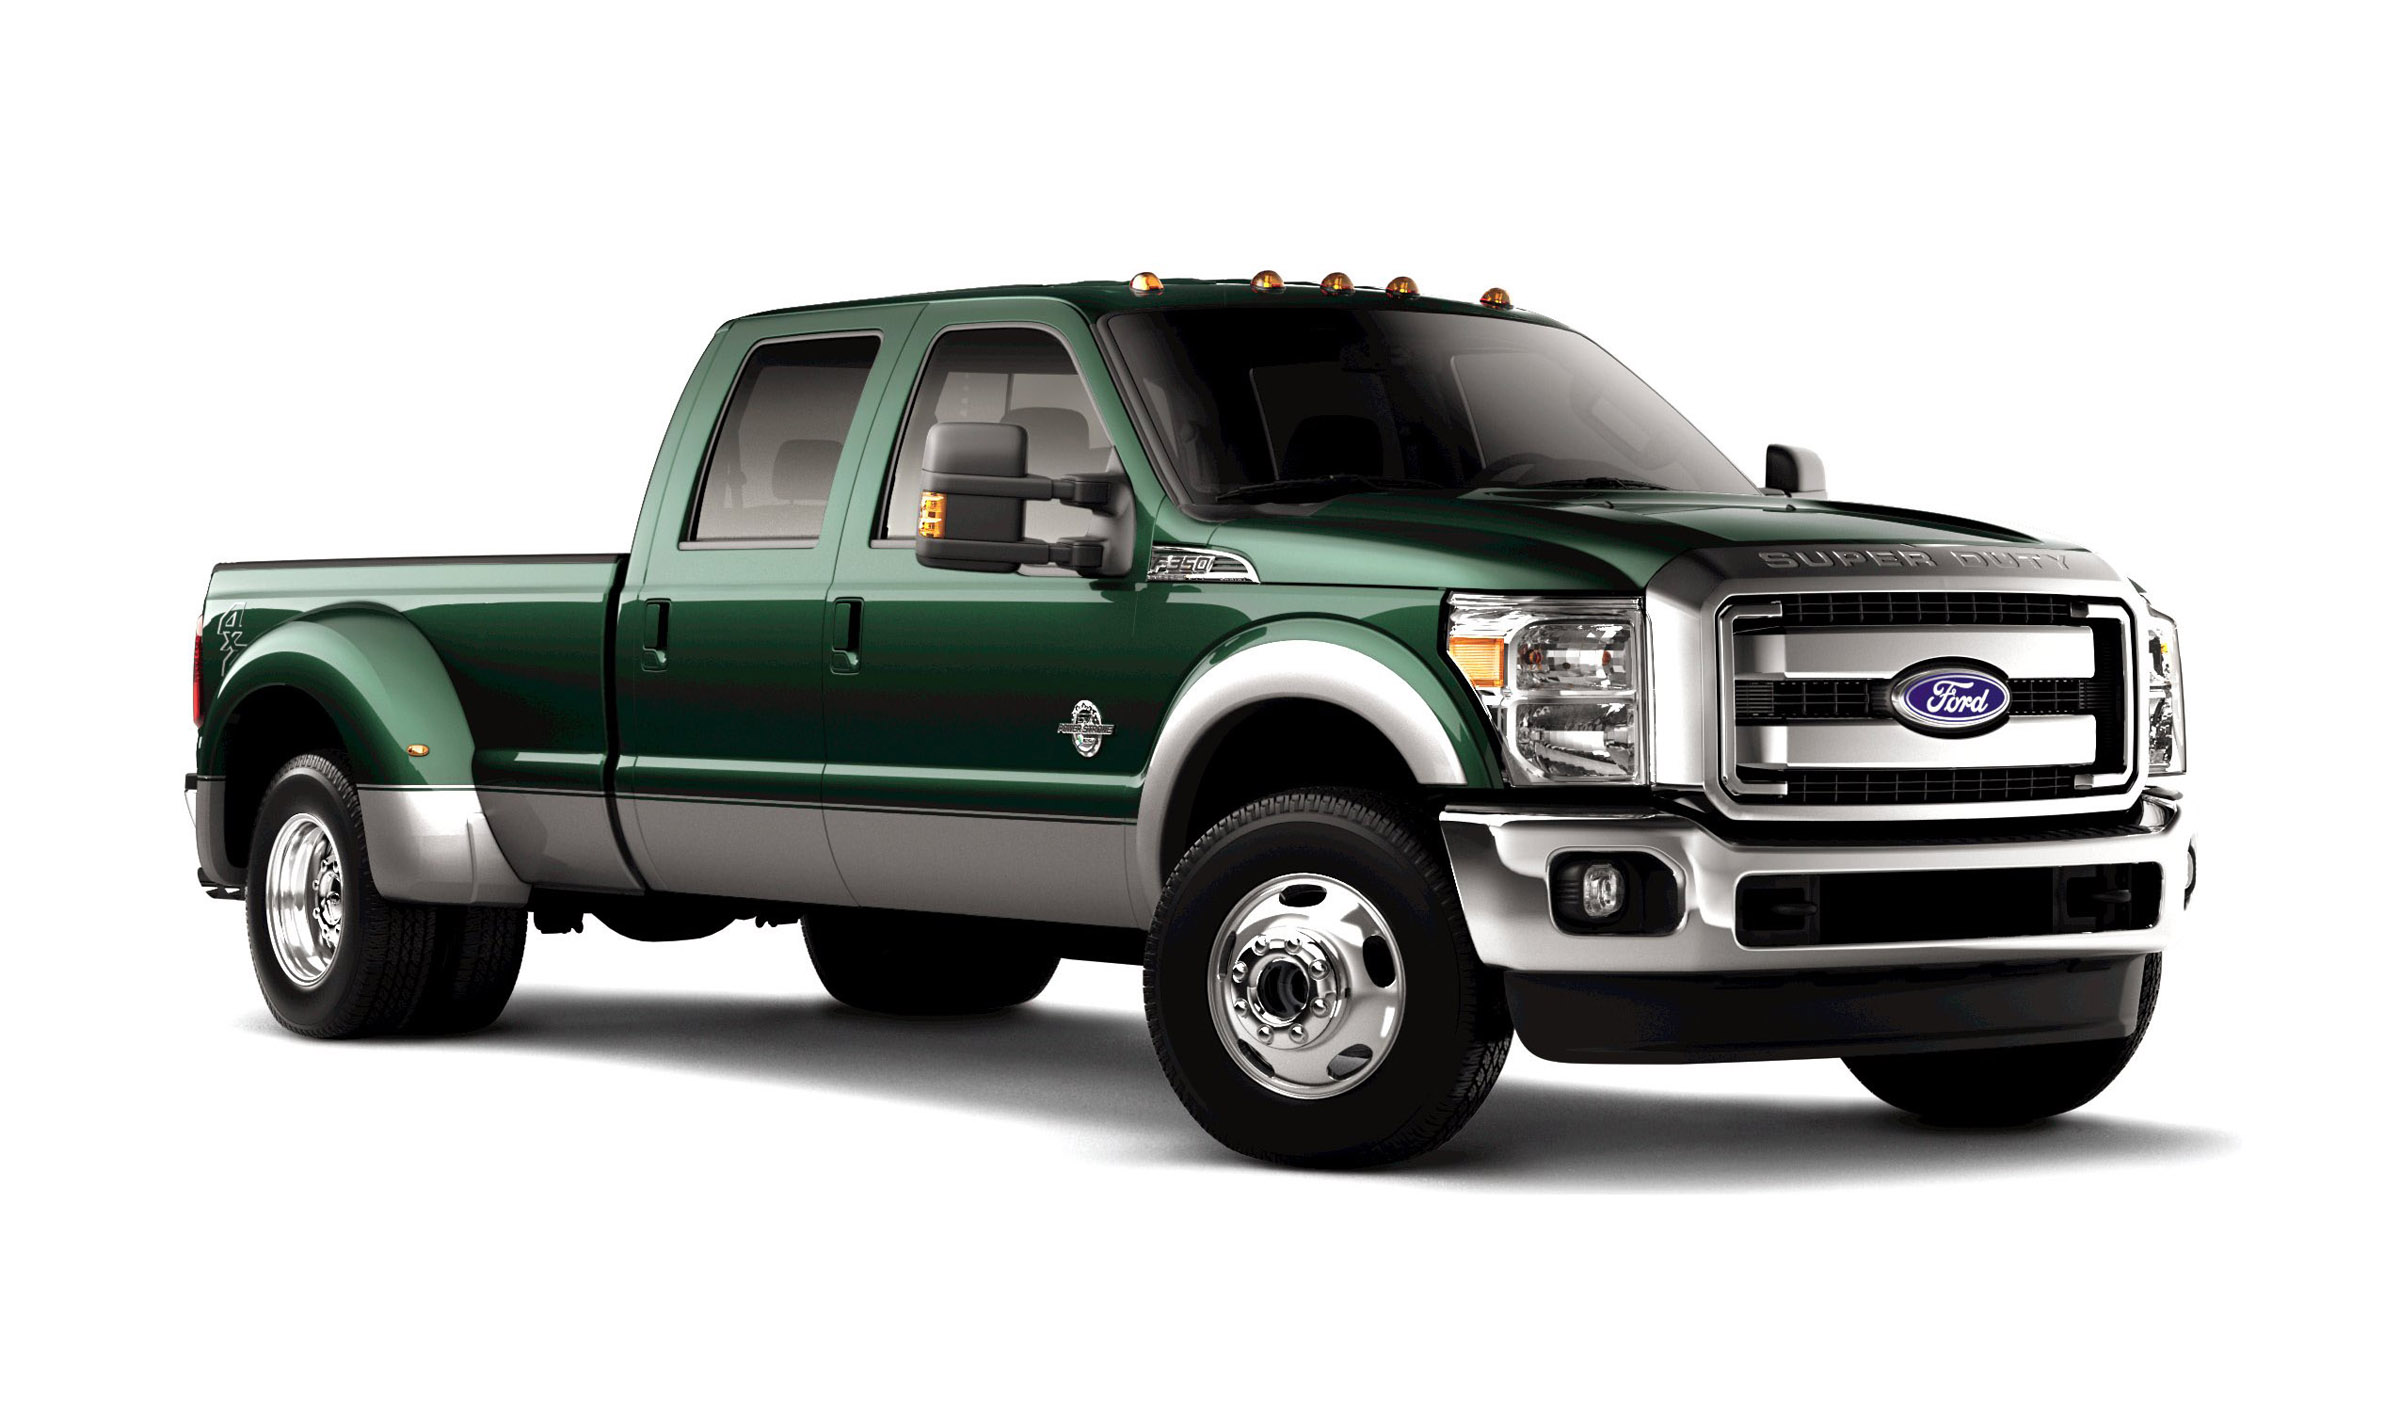 2008 Ford F-350 Super Duty #15